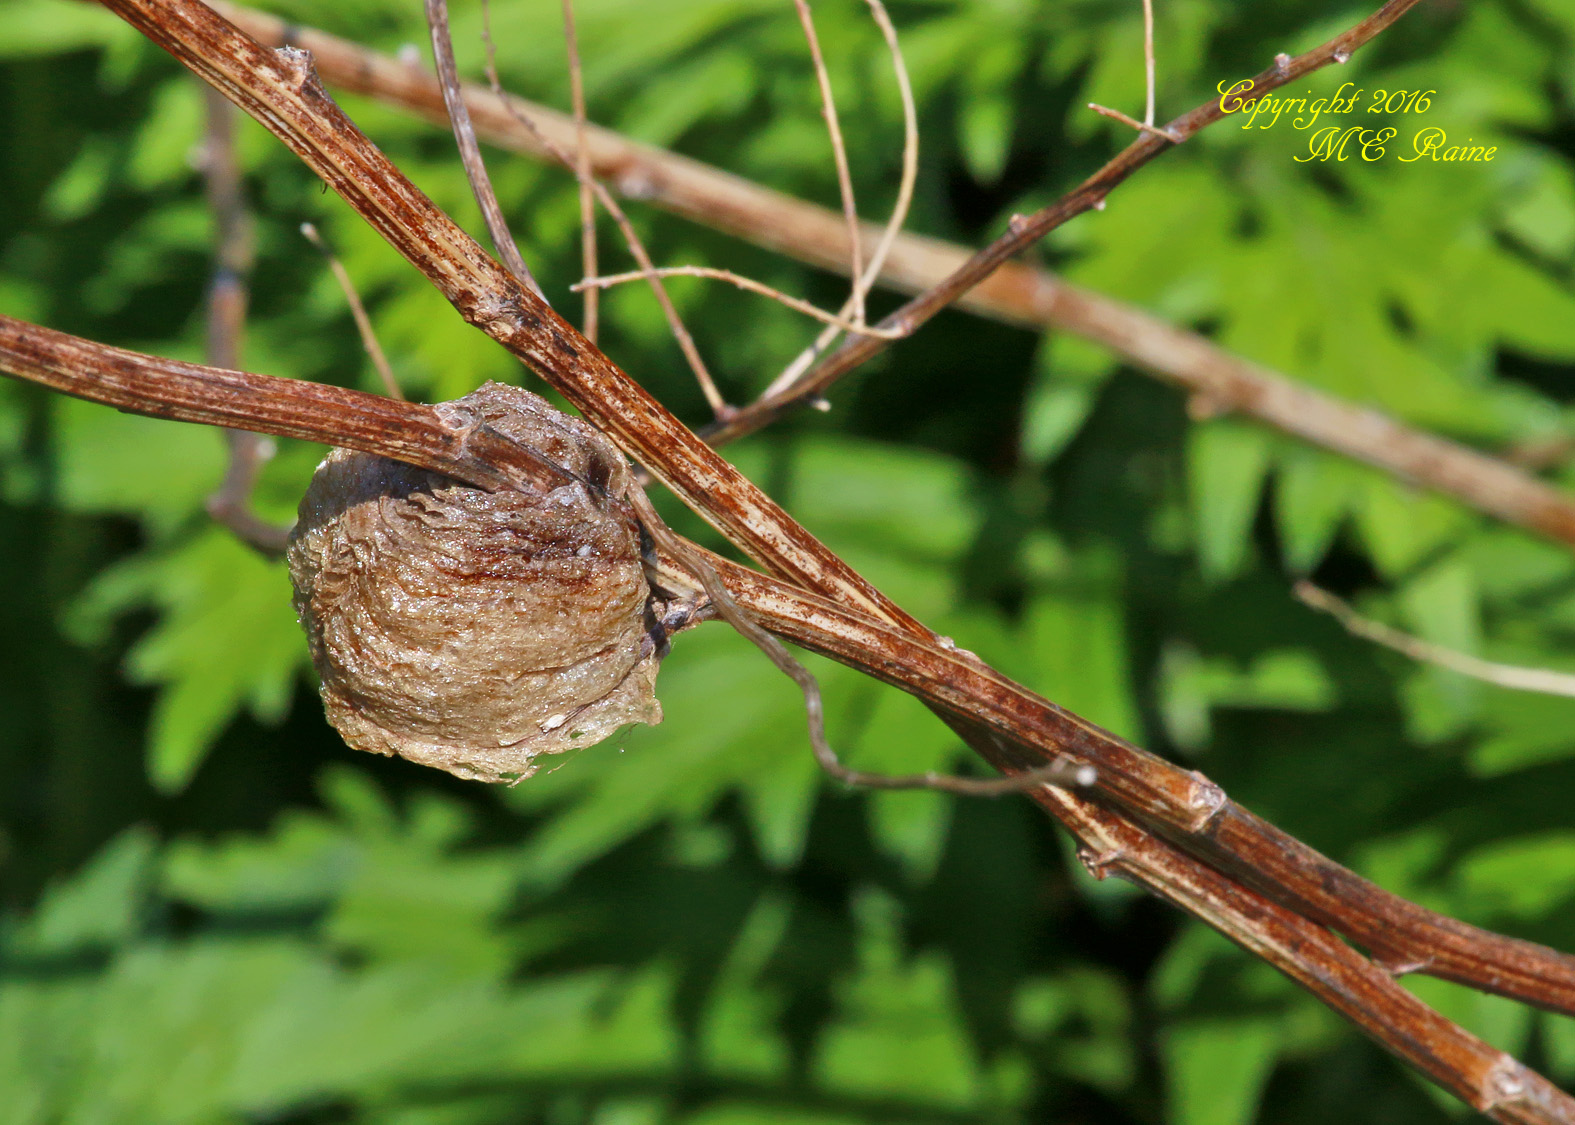 Praying Mantis Egg Casing Mill Creek Point Park